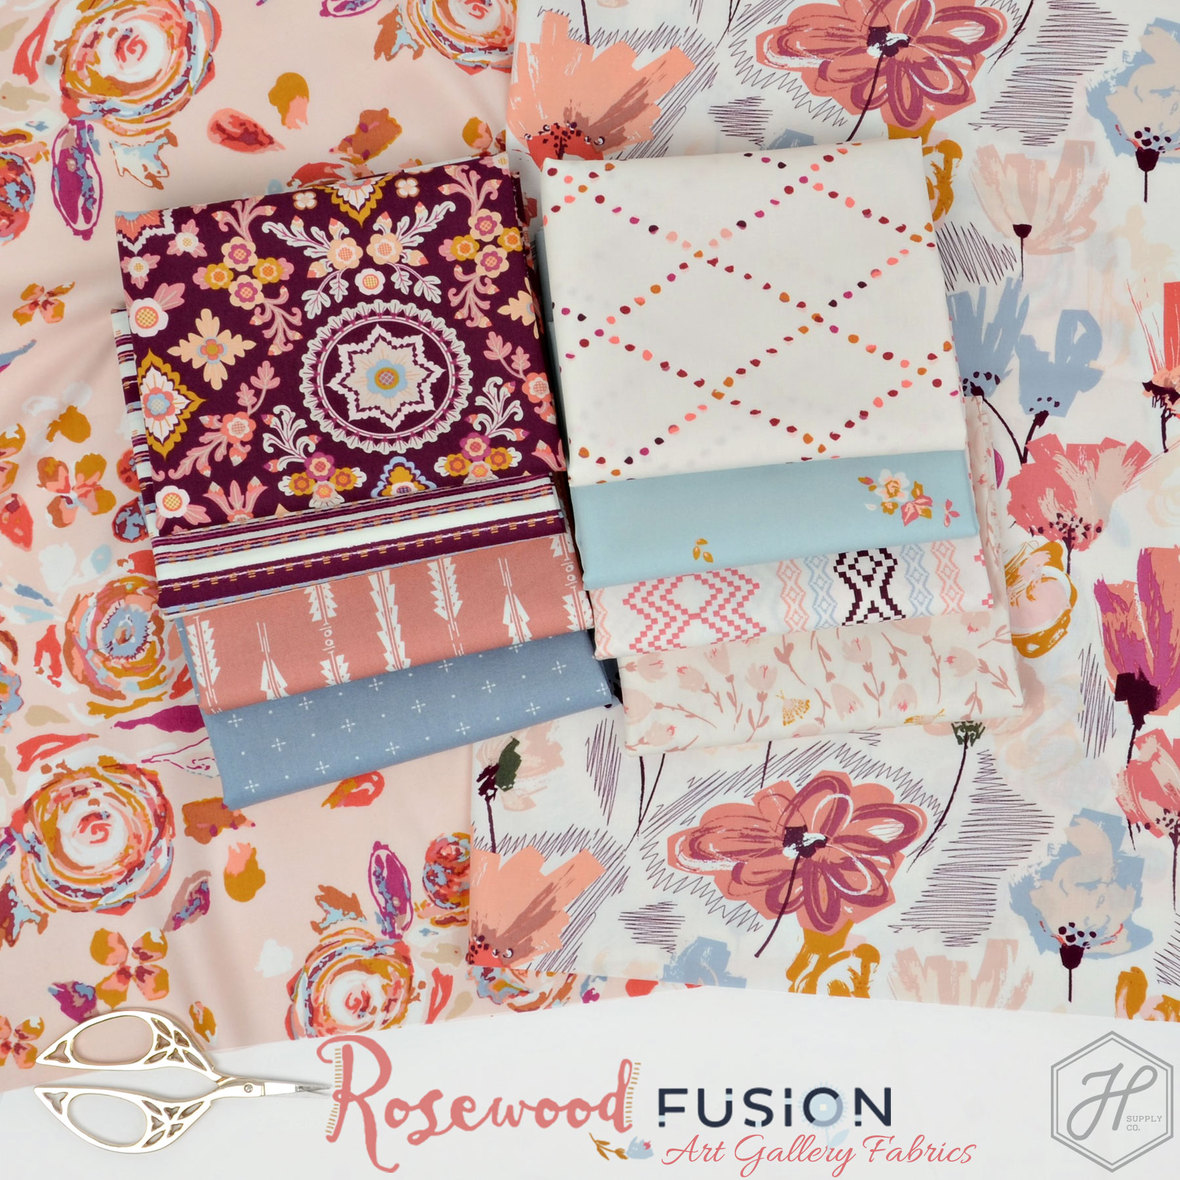 Rosewood-Fusion-Fabric-Art-Gallery-at-Hawthorne